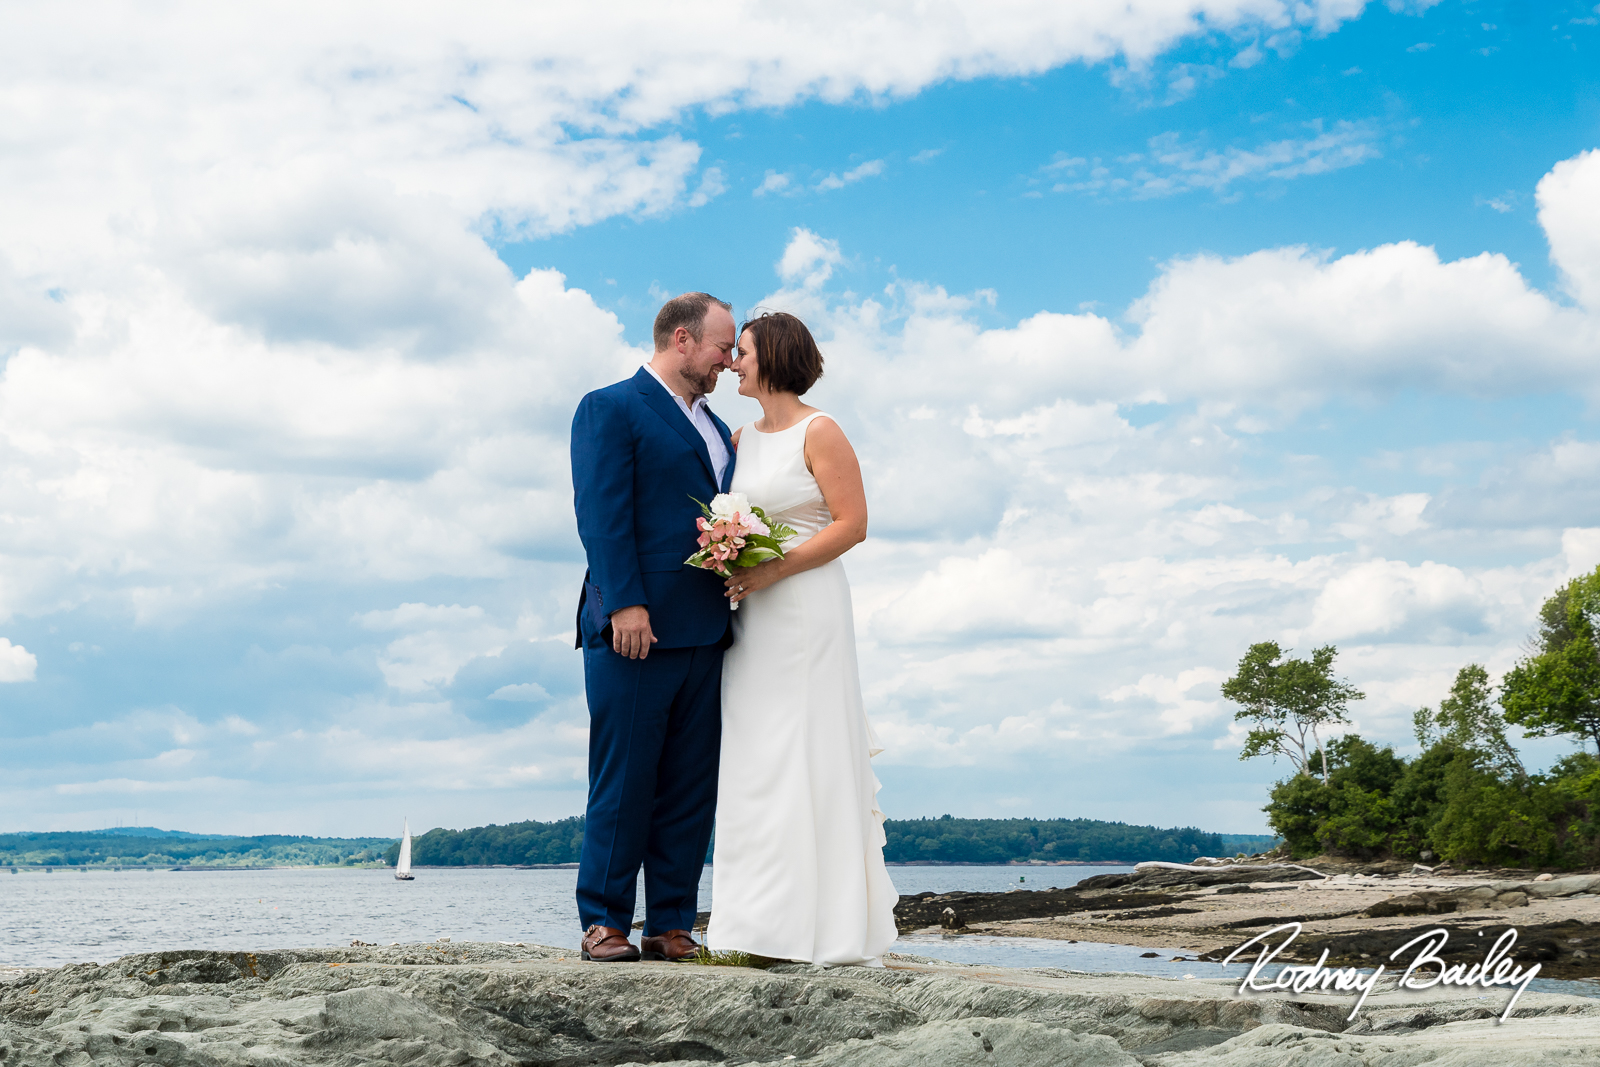 Destination Wedding Photographers Washington DC Rodney Bailey Photography